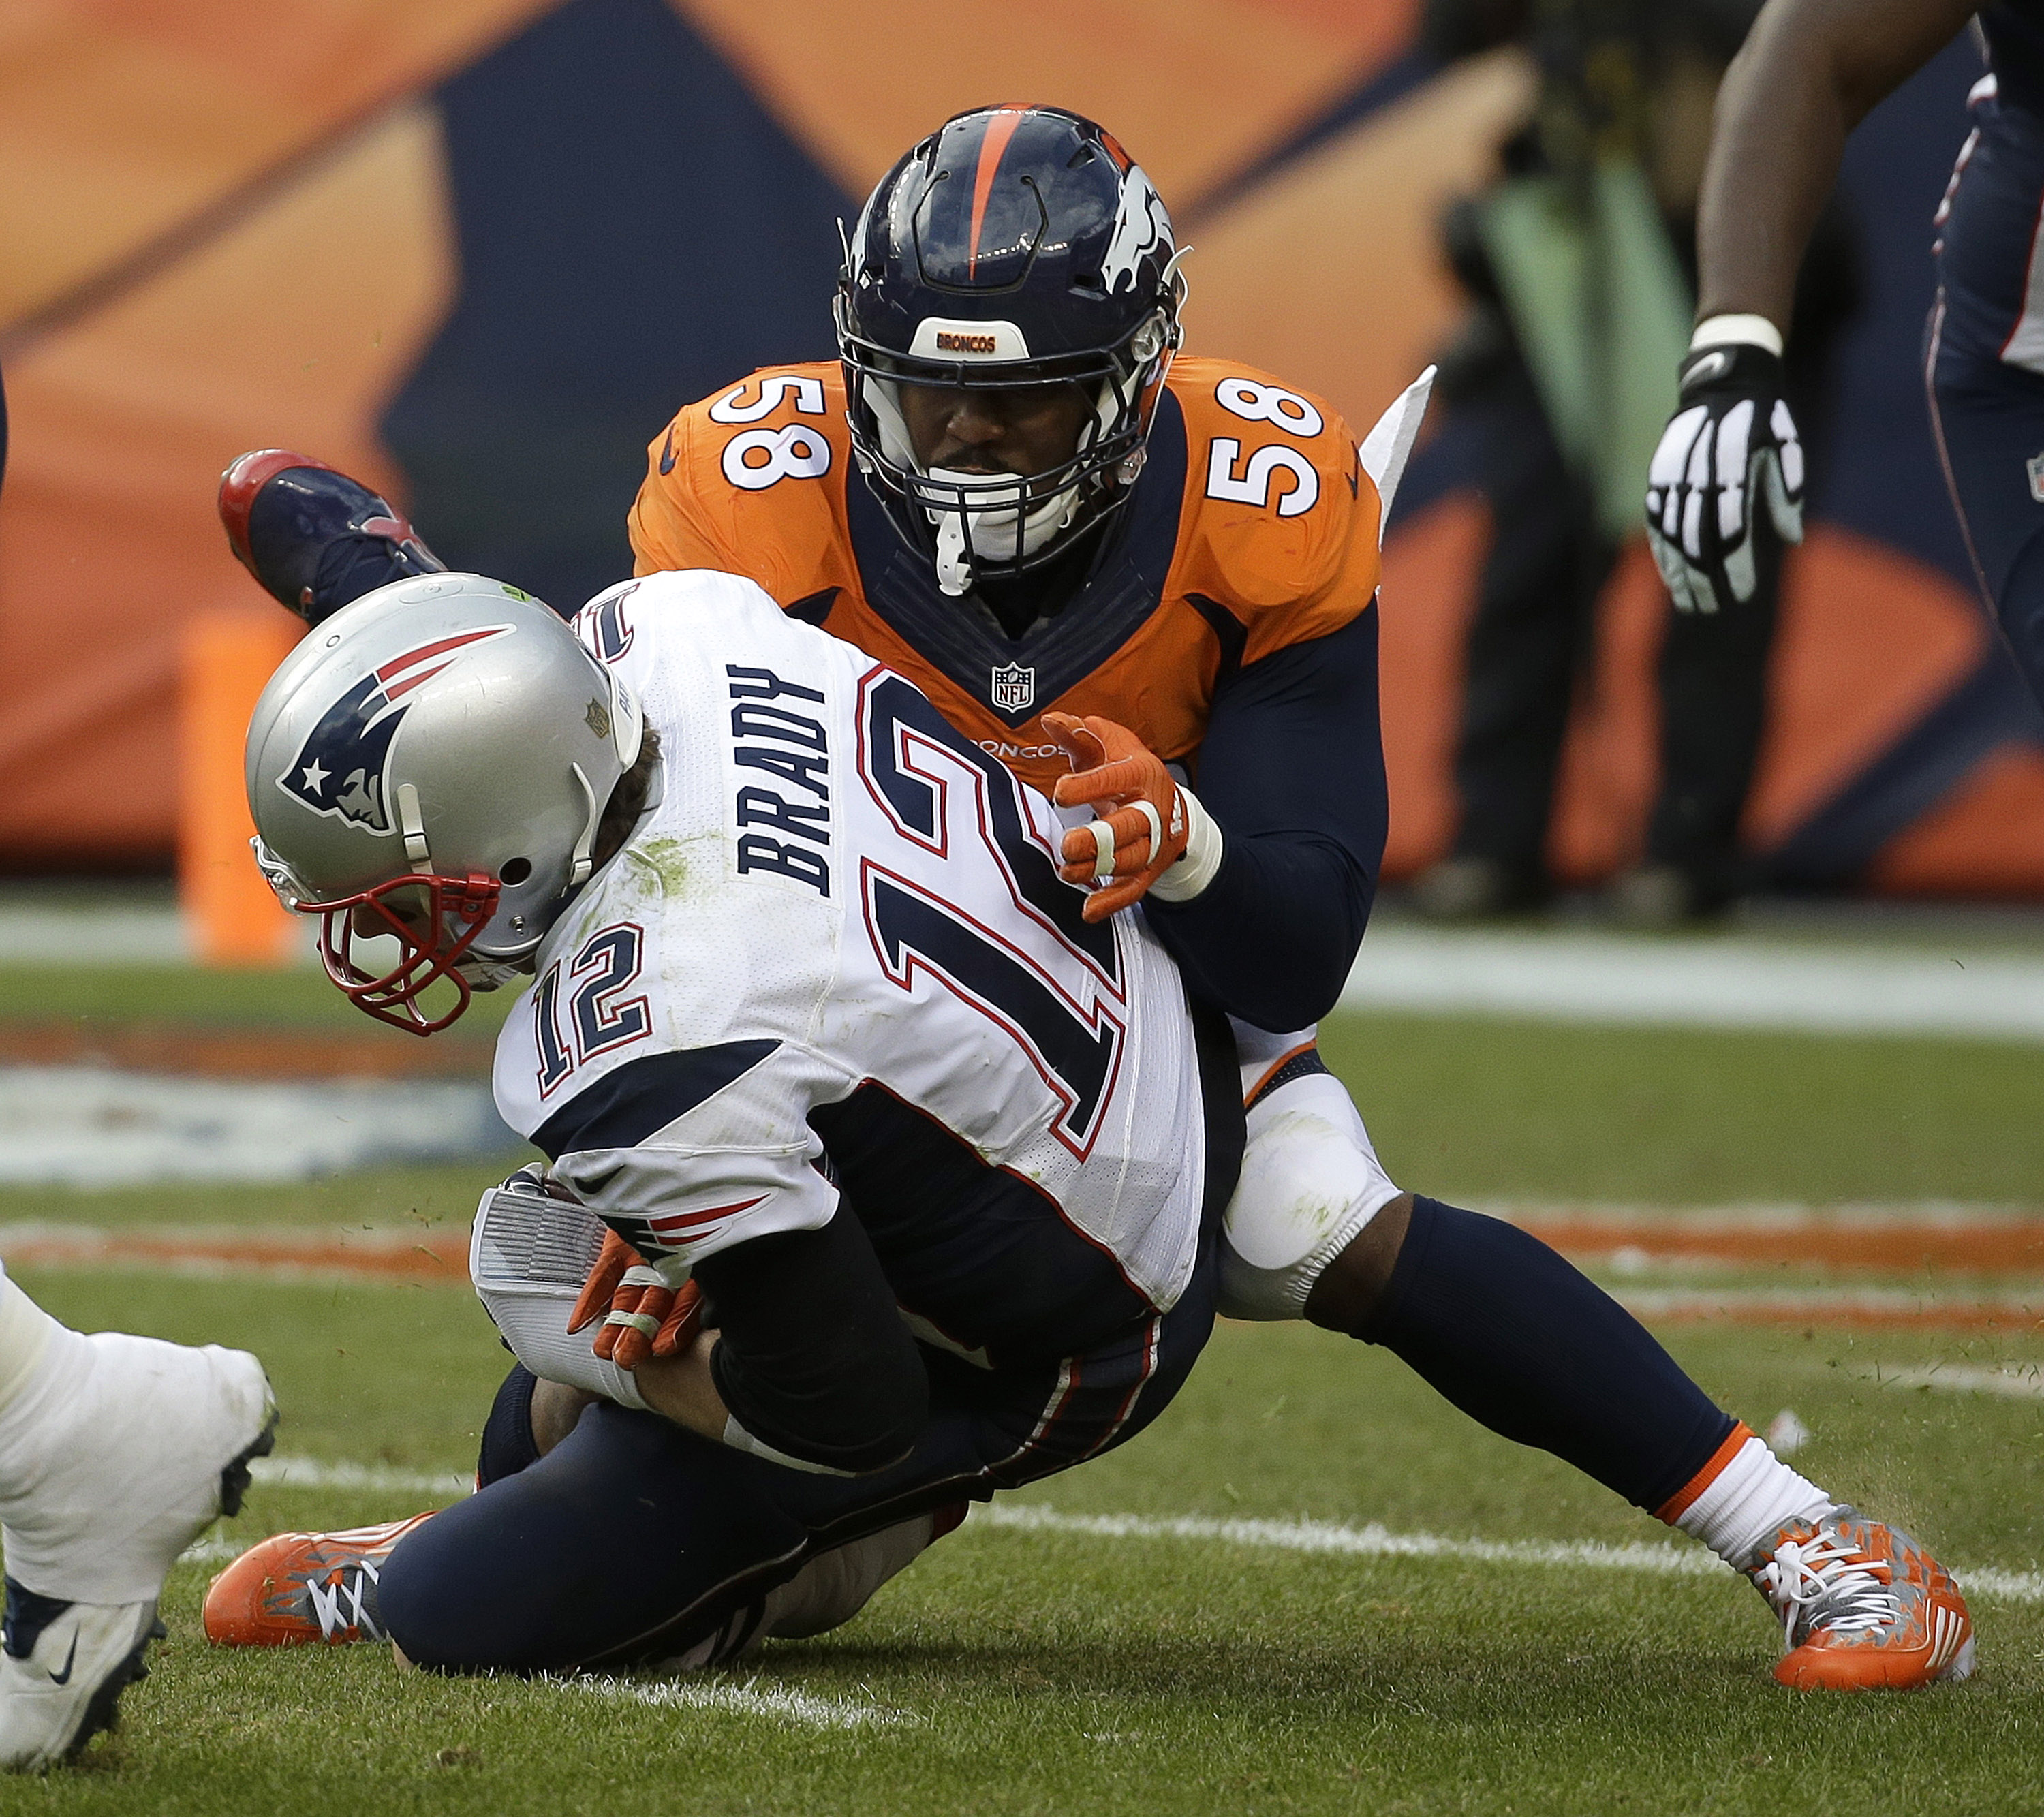 New England Patriots quarterback Tom Brady is sacked by Denver Broncos outside linebacker Von Miller during the second half of the NFL football AFC Championship game between the Denver Broncos and the New England Patriots, Sunday, Jan. 24, 2016, in Denver